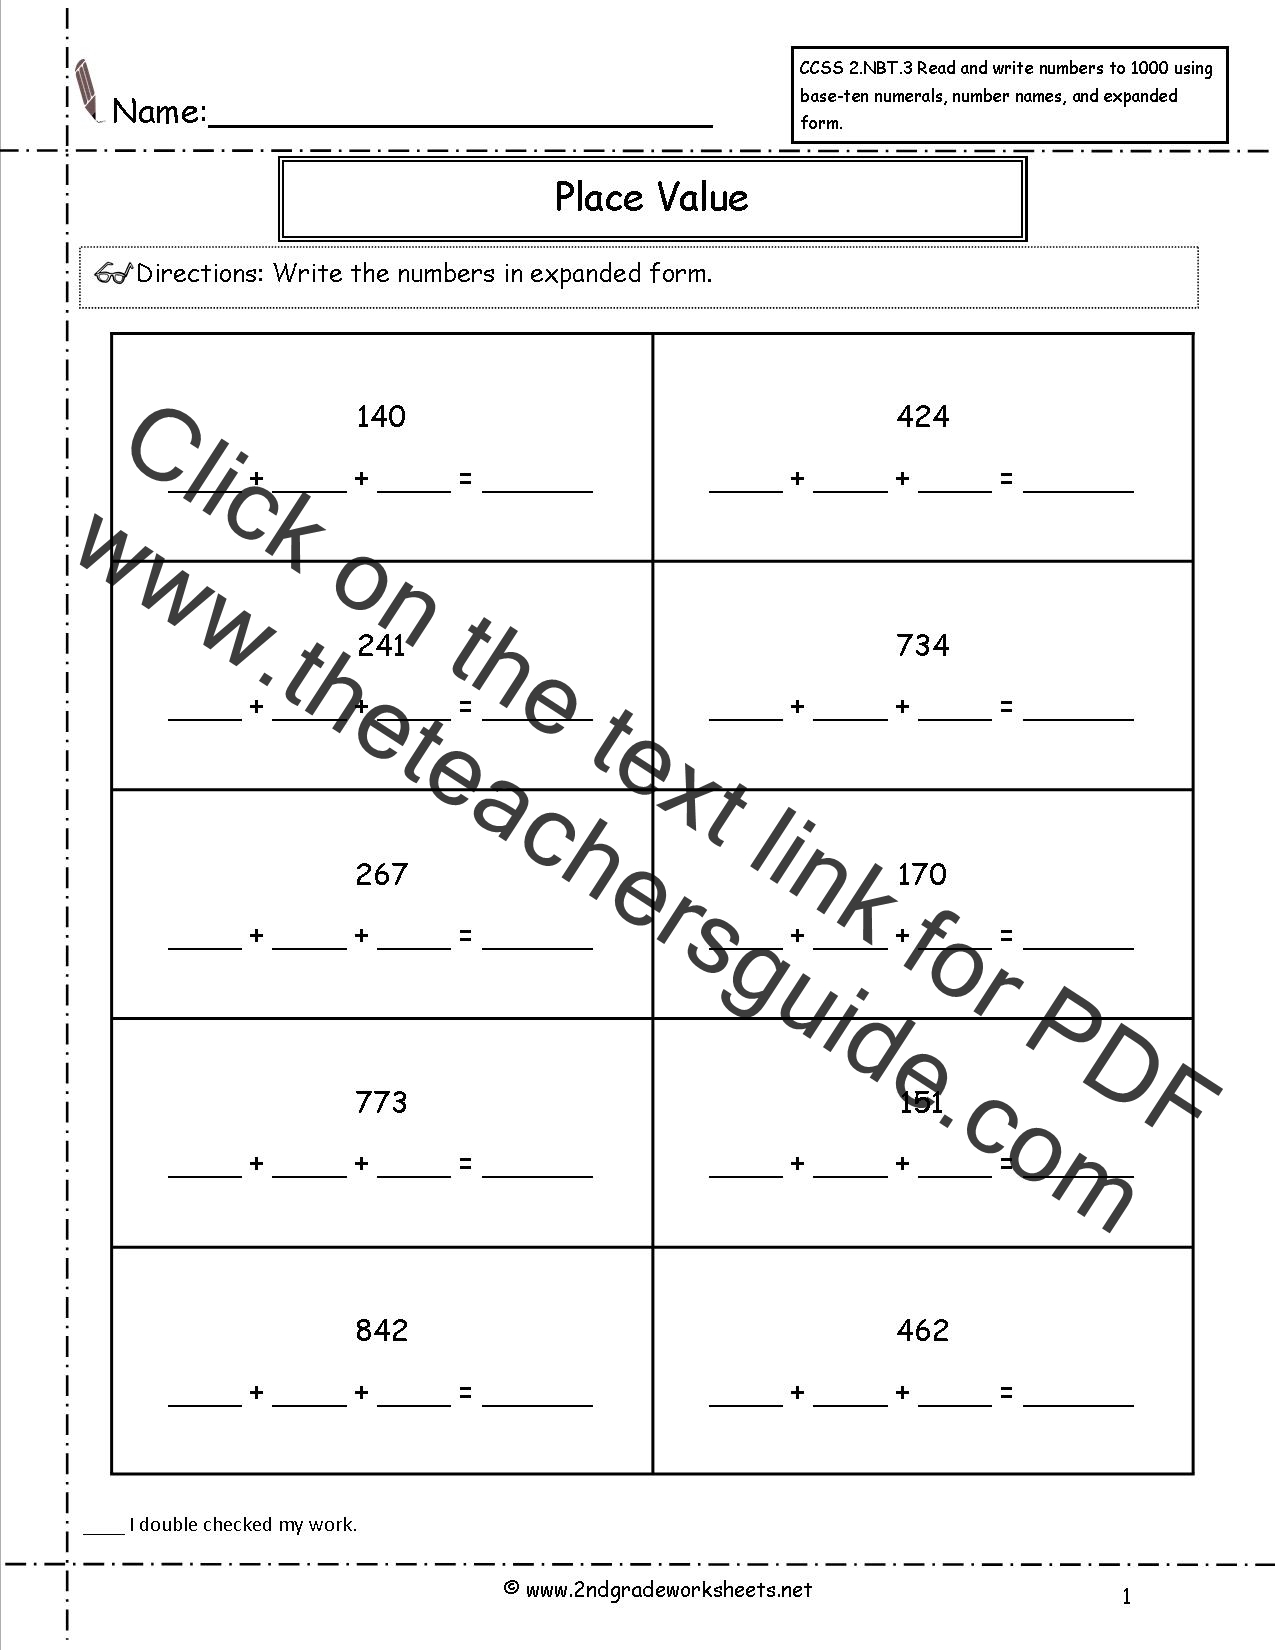 hight resolution of CCSS 2.NBT.3 Worksheets. Place Value Worksheets-Read and Write Numbers